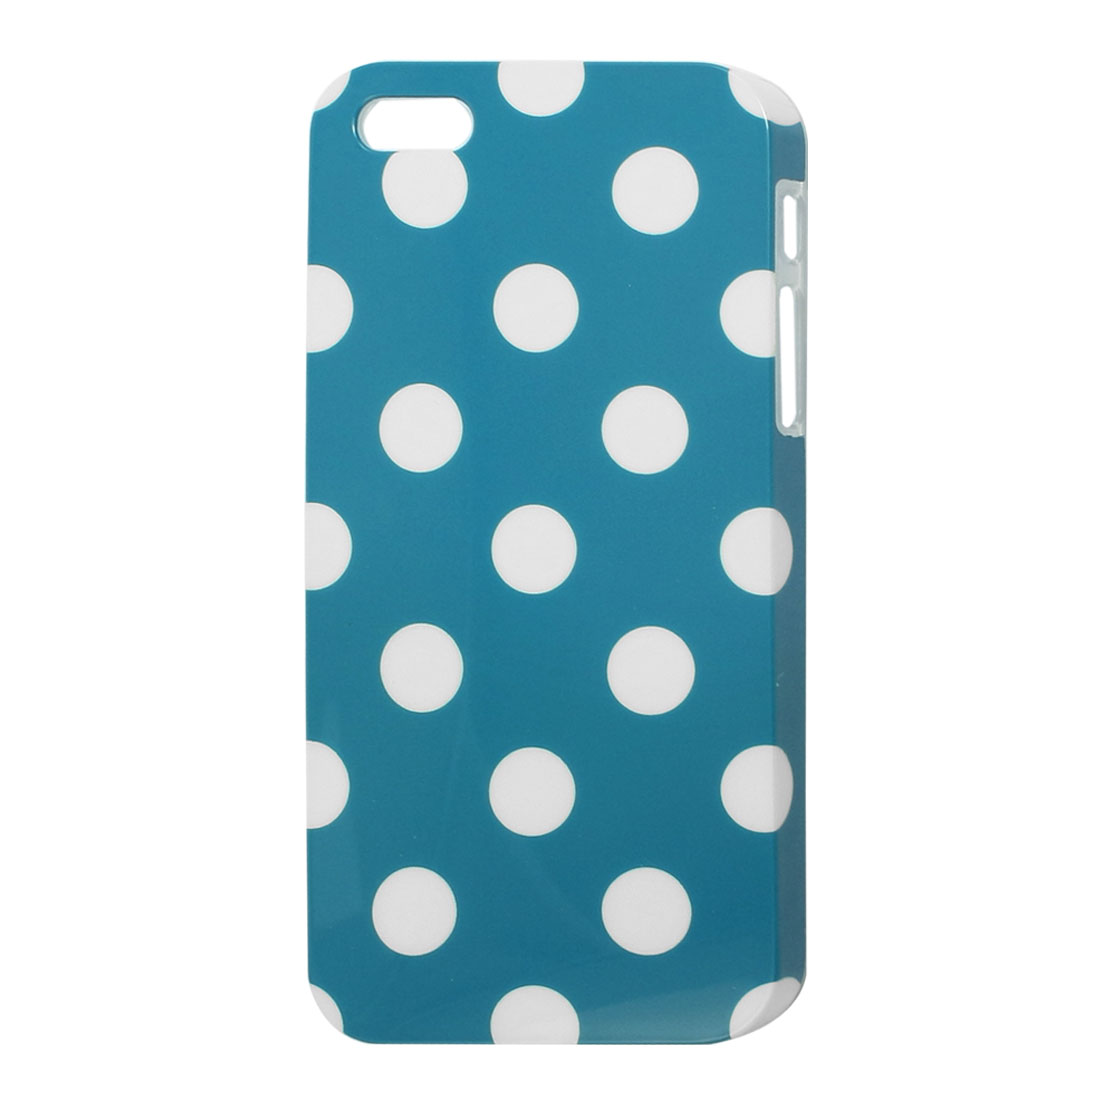 IMD Teal Blue White Dots Print Hard Plastic Back Case Protector for iPhone 5 5G